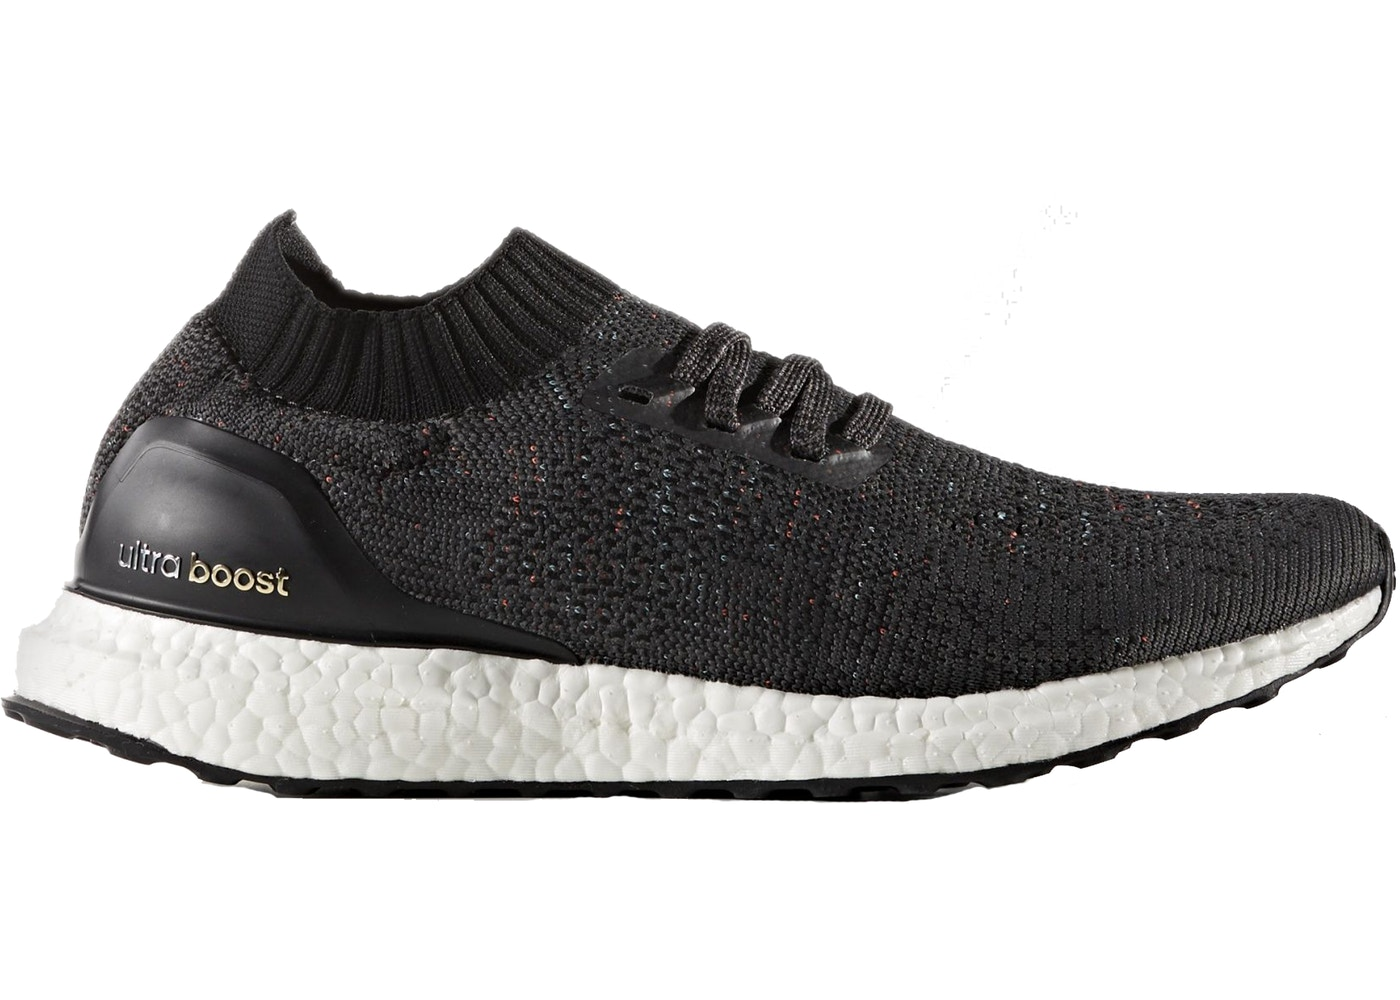 b5606ee9a6d84 adidas Ultra Boost Size 12 Shoes - Volatility